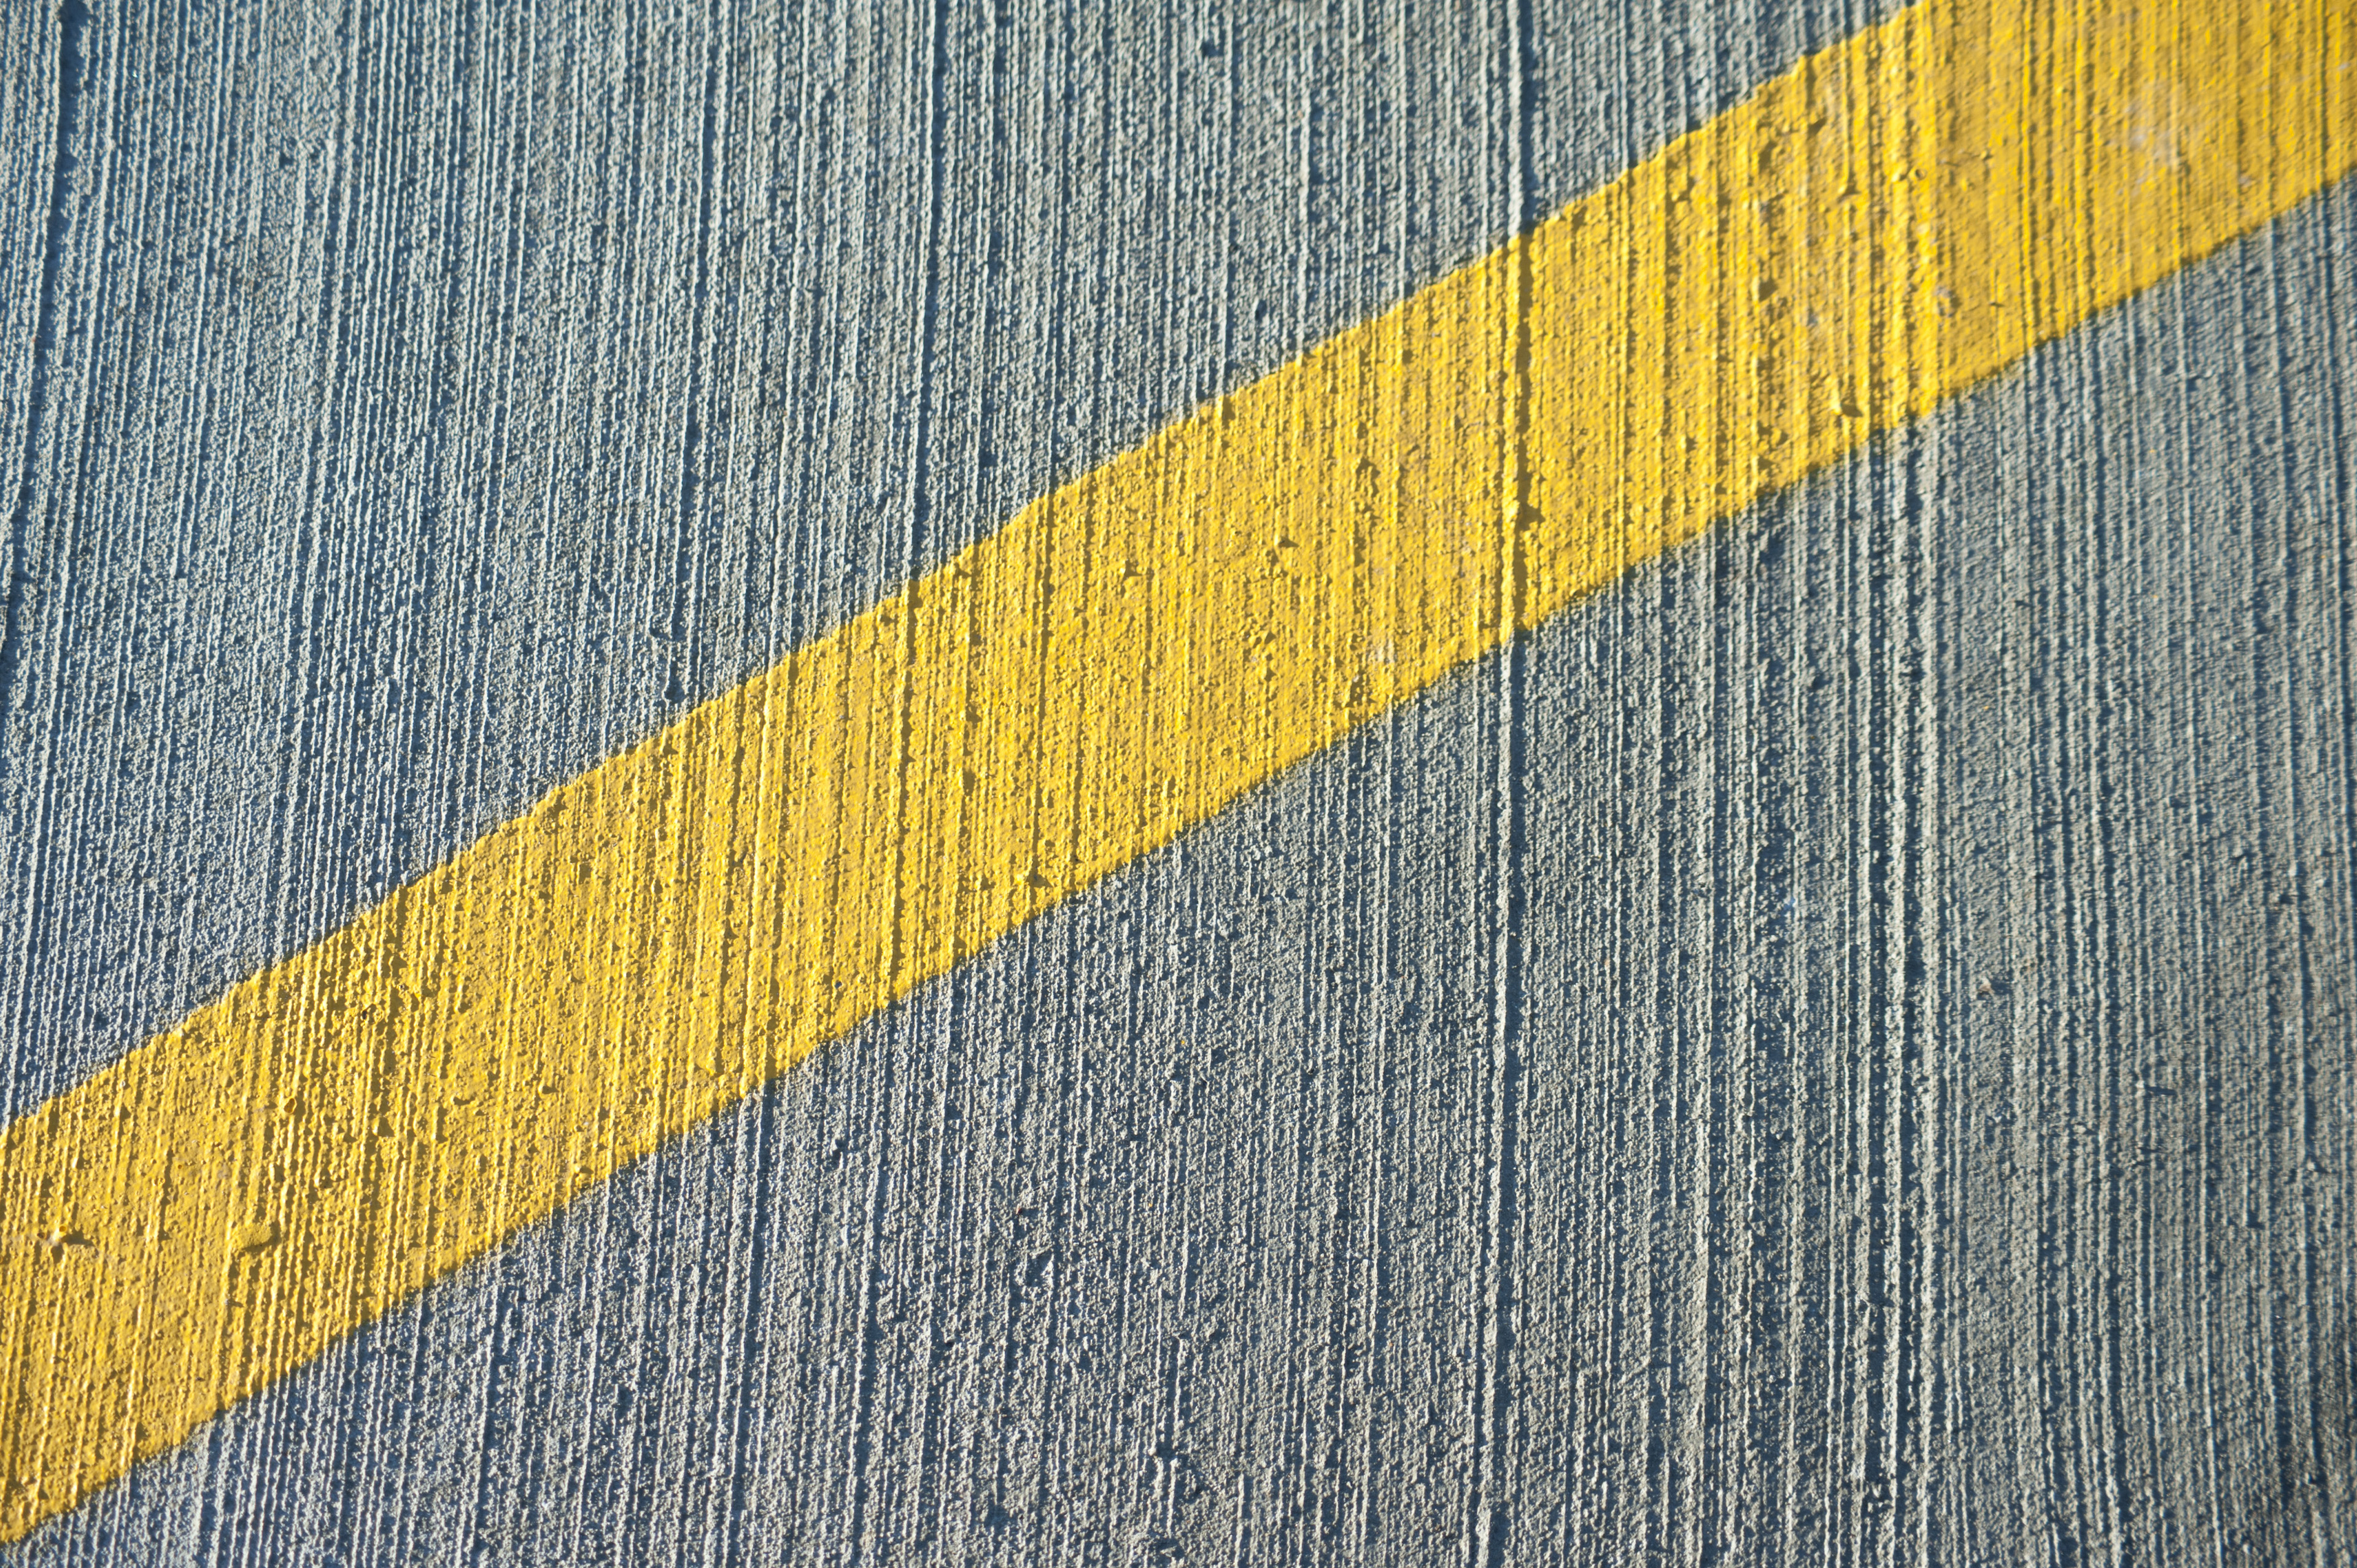 Oblique stripe of yellow paint marked on irregular gray concrete wall, close-up